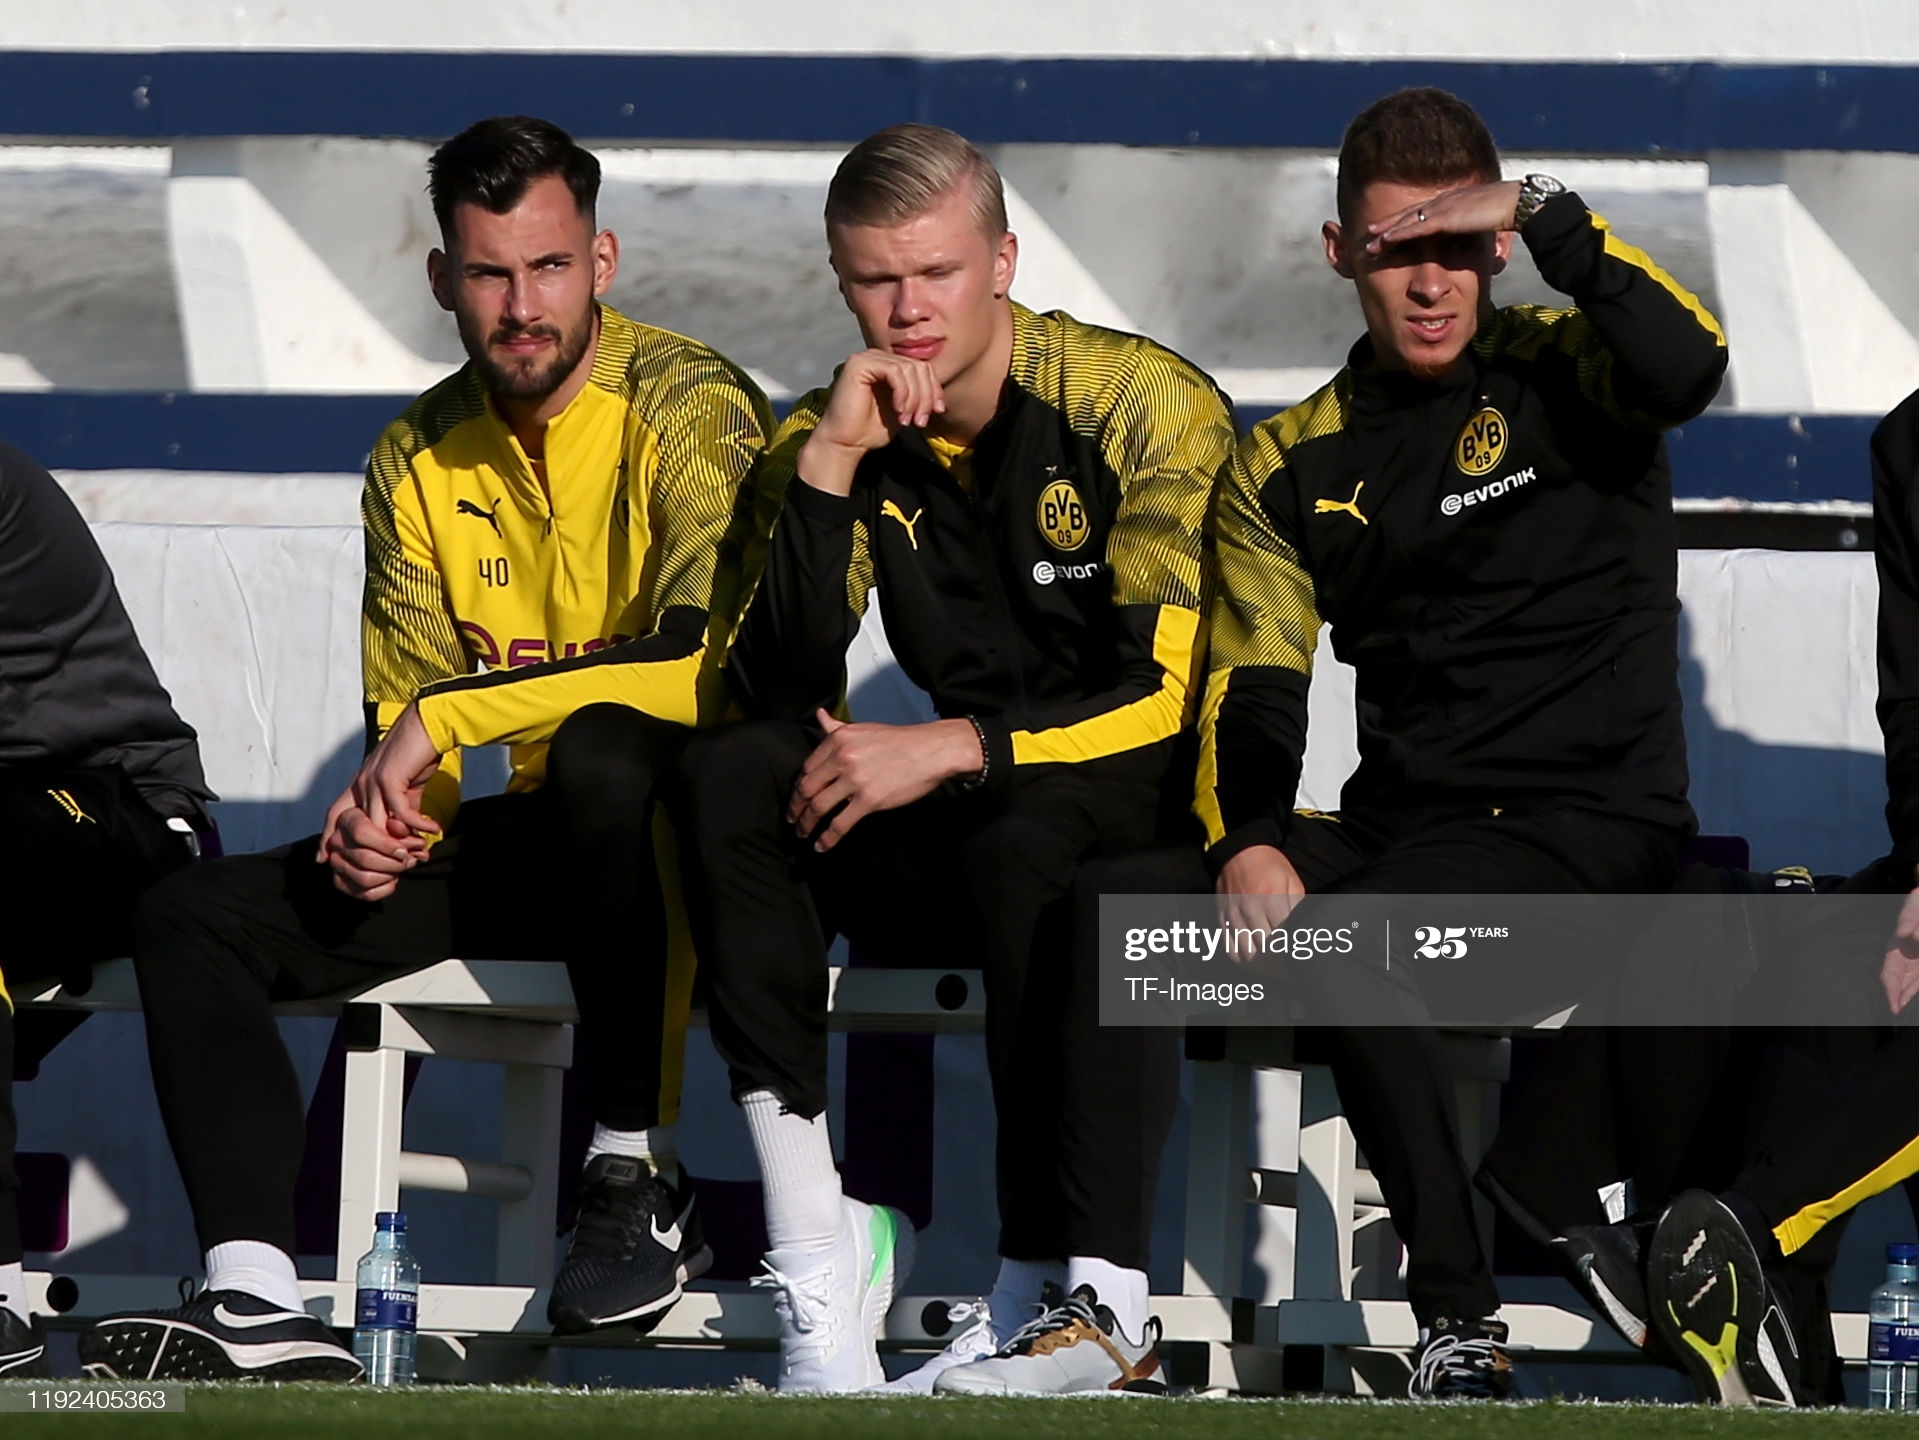 MARBELLA, SPAIN - JANUARY 07: (BILD ZEITUNG OUT) goalkeeper Eric Oelschlaegel of Borussia Dortmund, Erling Braut Haaland of Borussia Dortmund and Thorgen Harzard of Borussia Dortmund looks on during a friendly match between Borussia Dortmund and Standard Liege on January 7, 2020 in Marbella, Spain. (Photo by TF-Images/Getty Images)